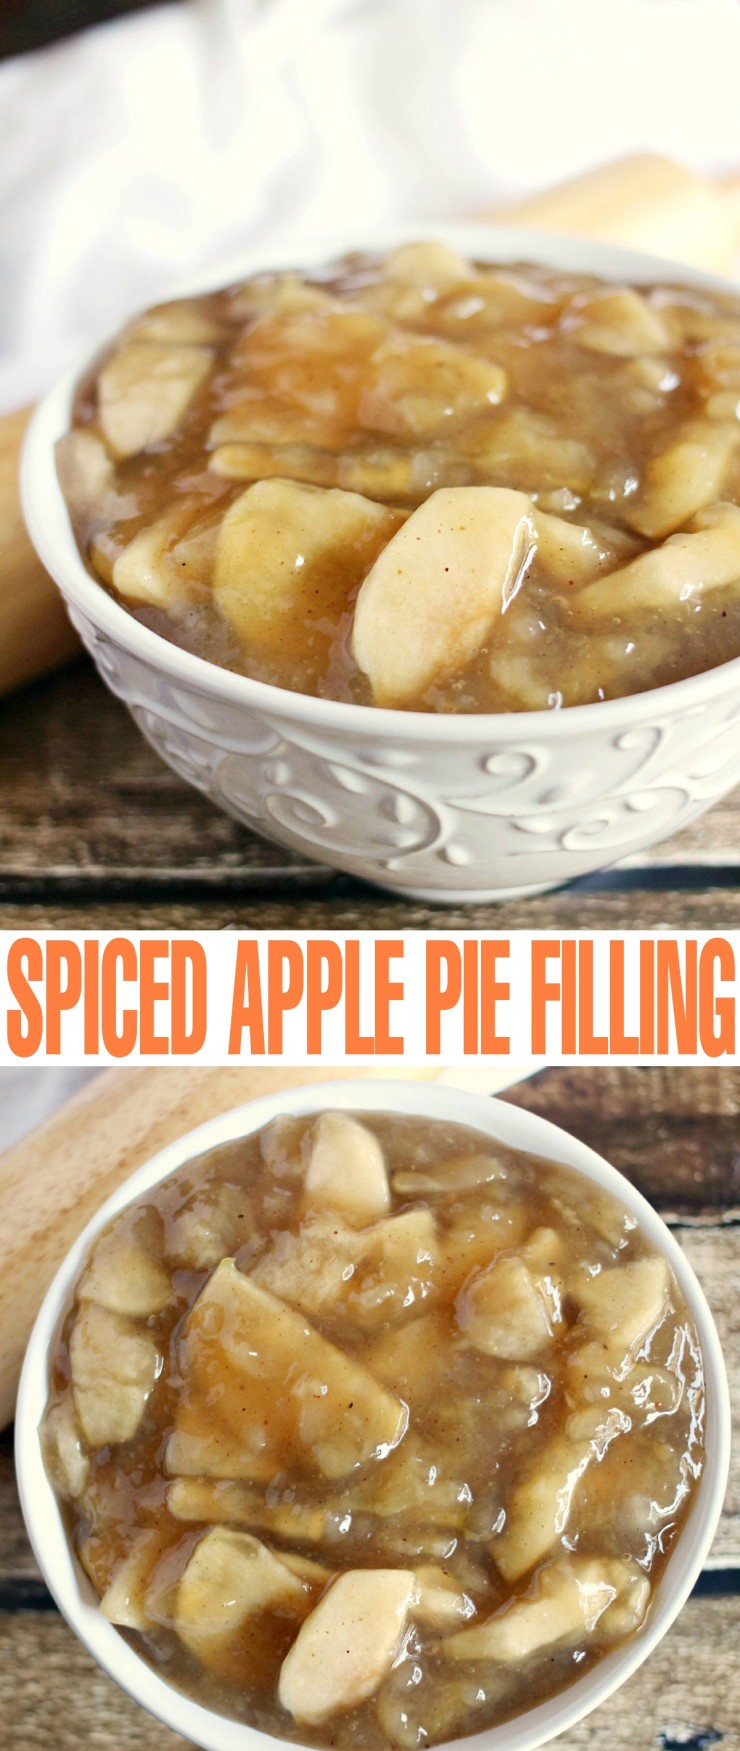 Spiced Apple Pie Filling is perfect for freezing and canning so you can make your favourite apple dessert recipe anytime in a breeze!